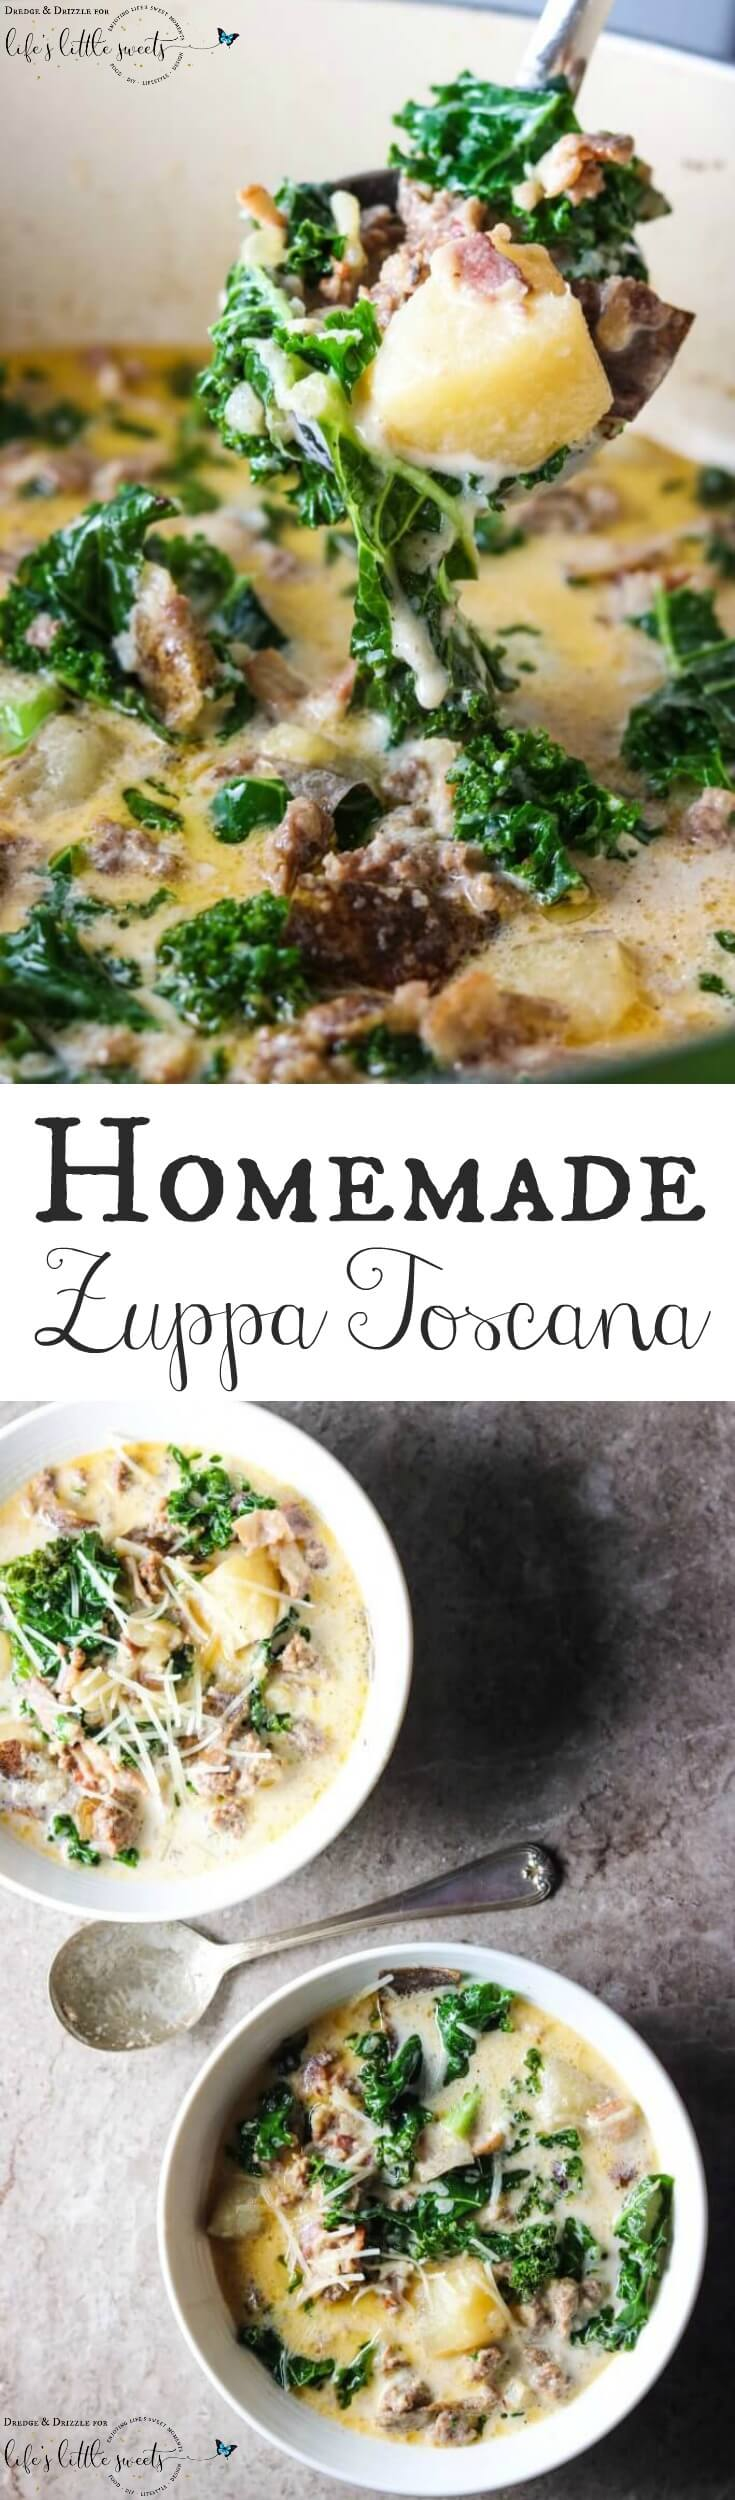 We're knee-deep in soup season and this Homemade Zuppa Toscana is a top contender for my favorite soup! Both because it's tasty and because it's easy to throw together. It could also be considered a good or bad thing that my whole family loves it. The last time I made it, the leftovers were barely a bowlful. #recipe #homemade #recipe #soup #zuppatoscana #copycat